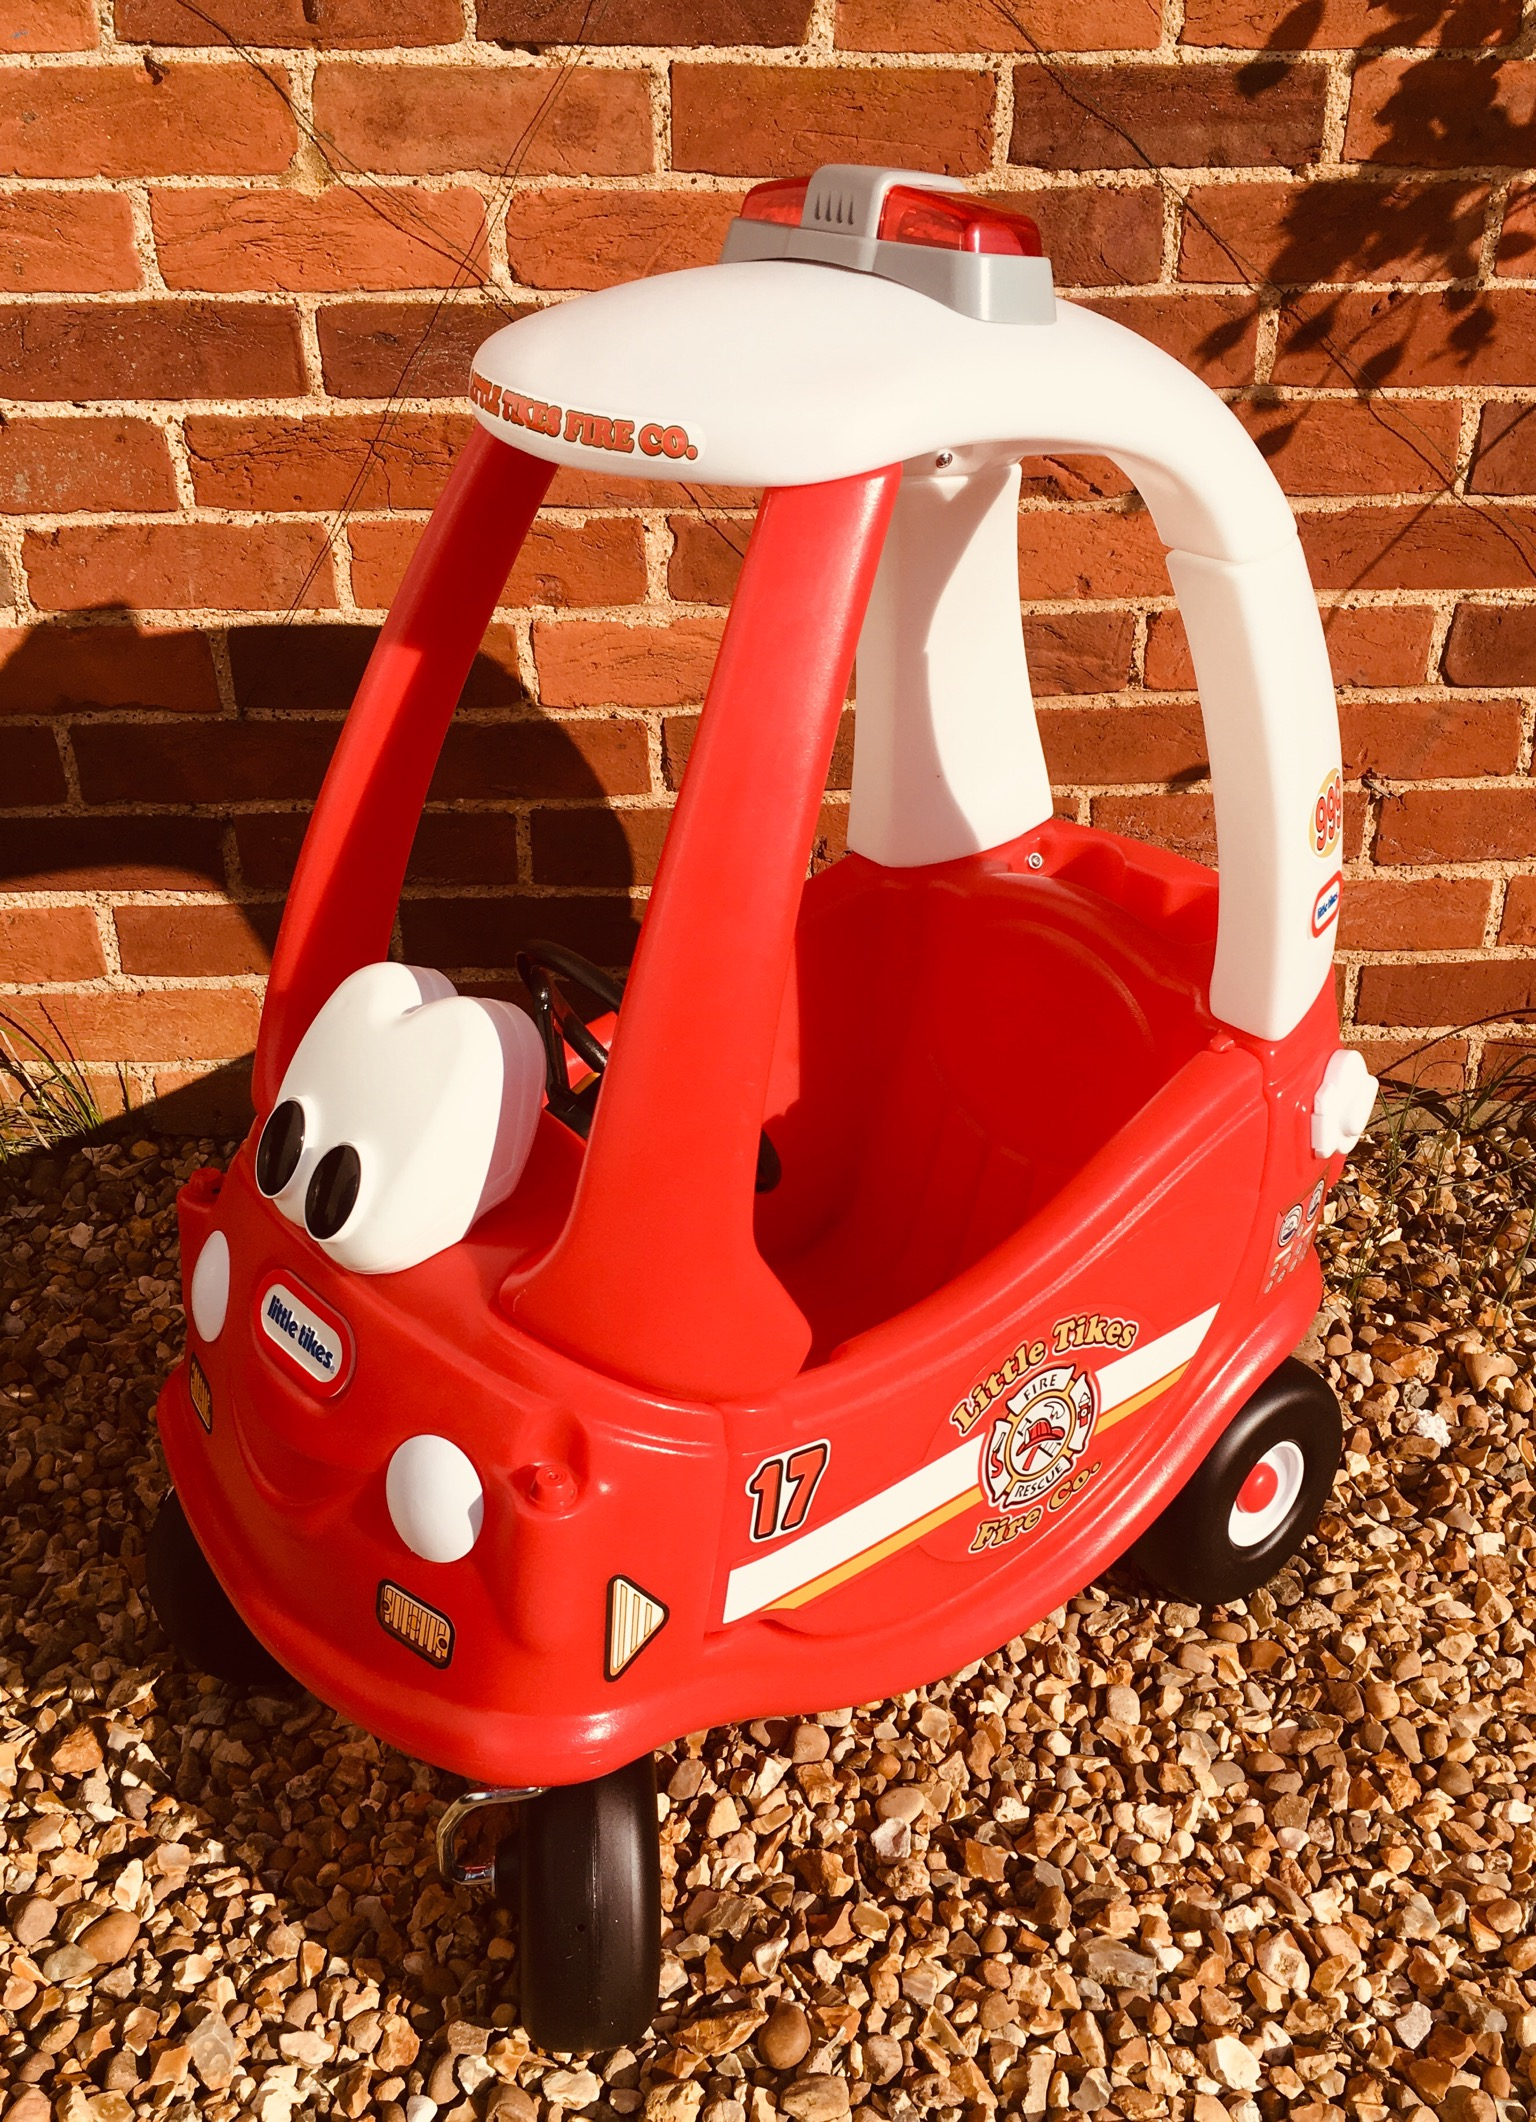 Red and white Little Tikes Fire Engine cozy coupe ride on toy